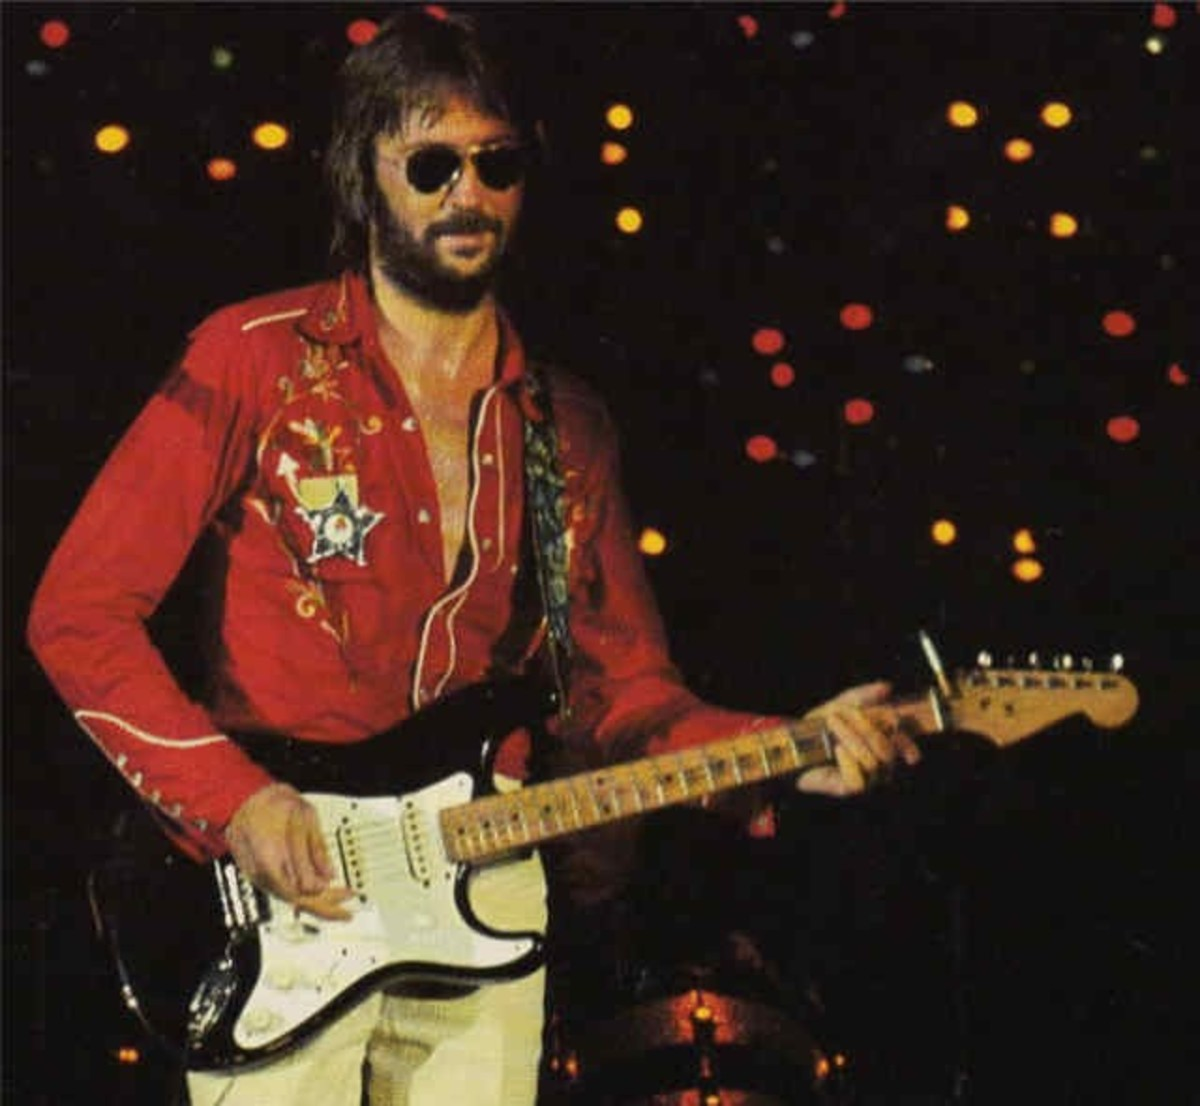 Clapton and Blackie, a Strat composed from parts of several different Strats.